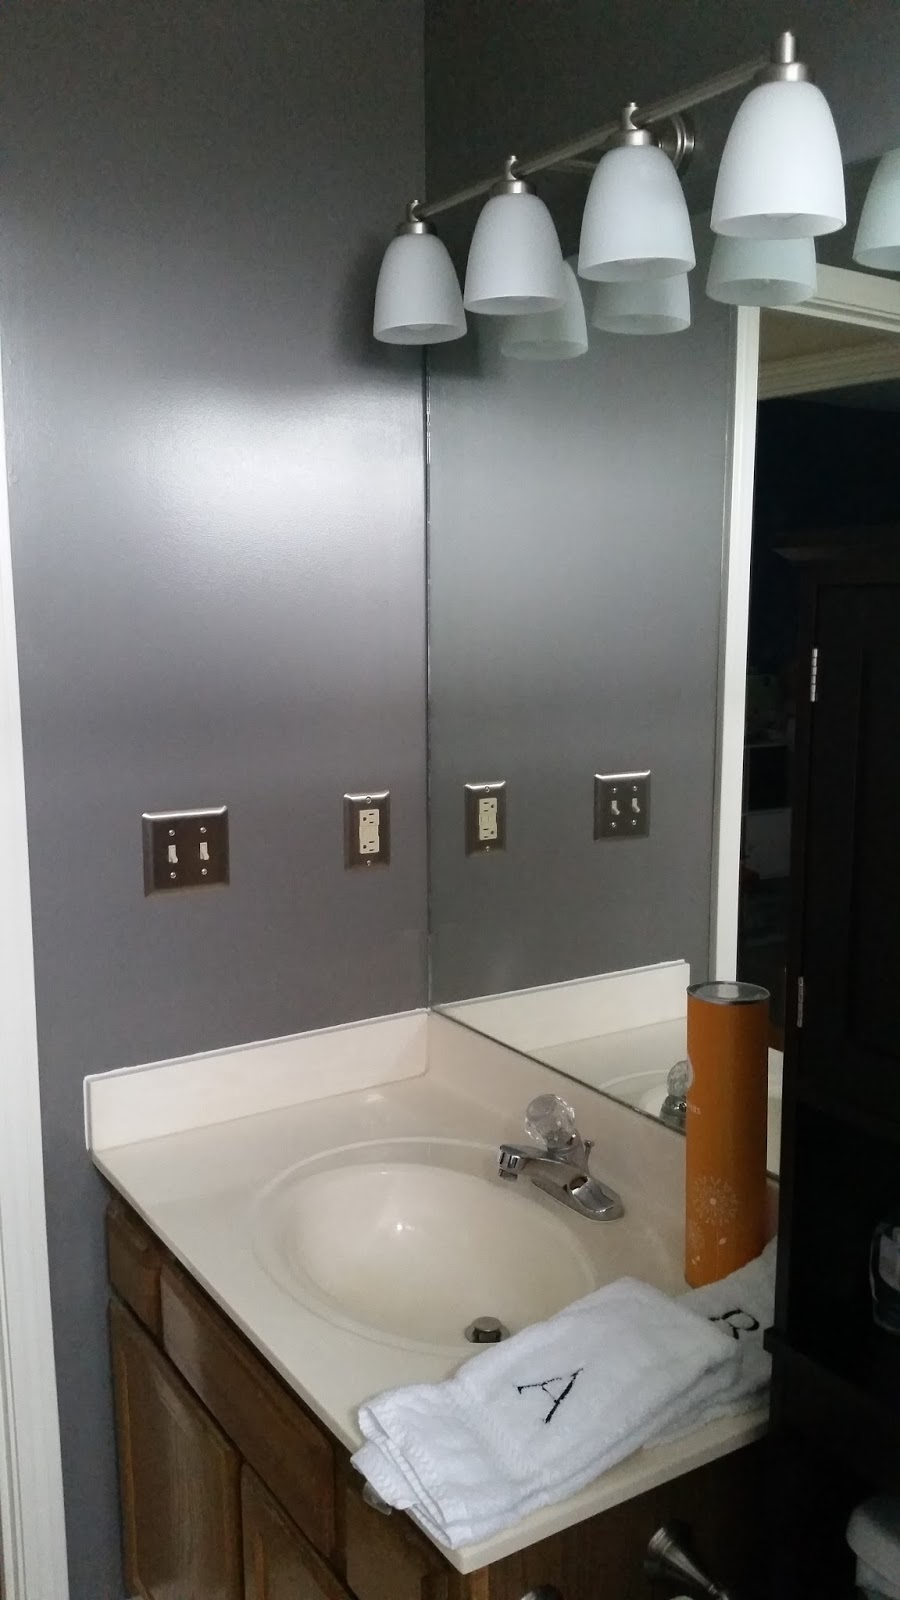 Lighting a match in the bathroom